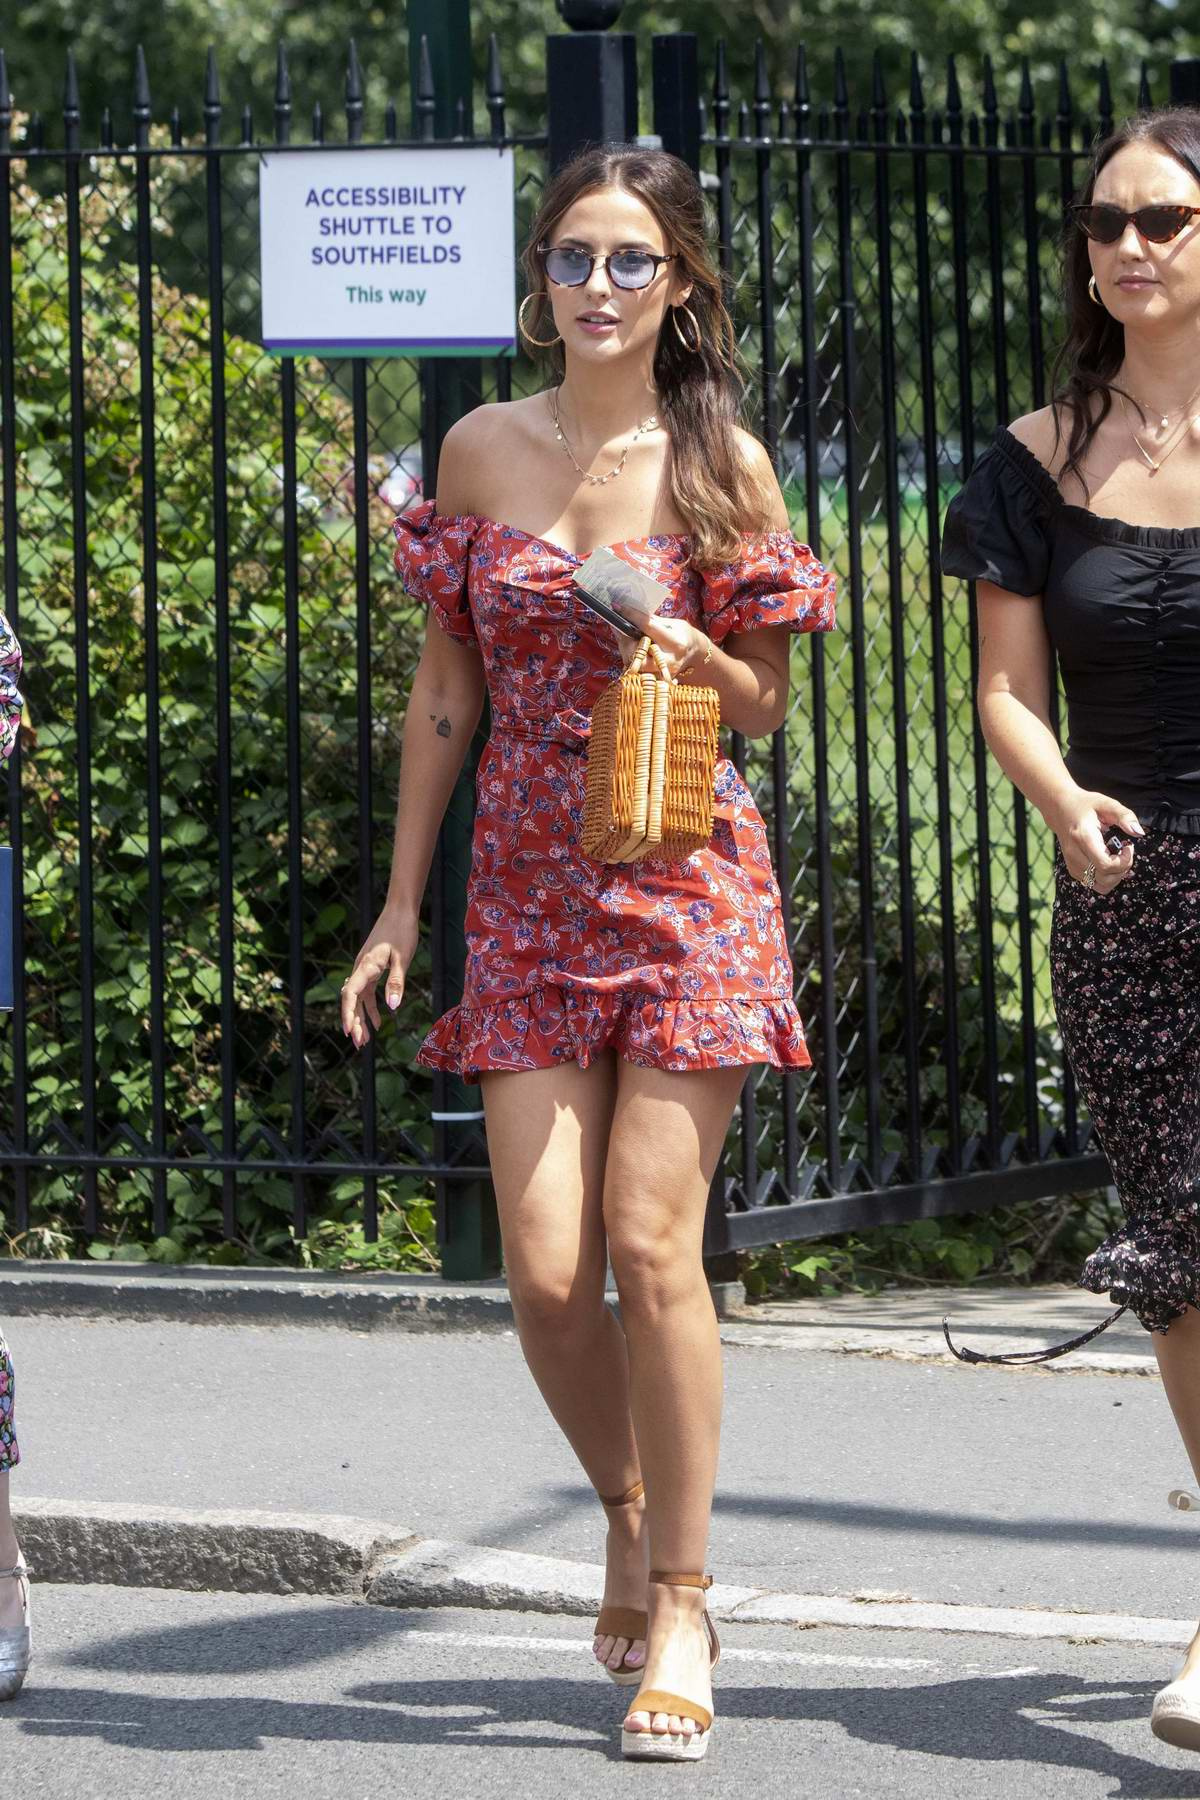 Lucy Watson arrives at the 2019 Wimbledon at All England Lawn Tennis and Croquet Club in London, UK